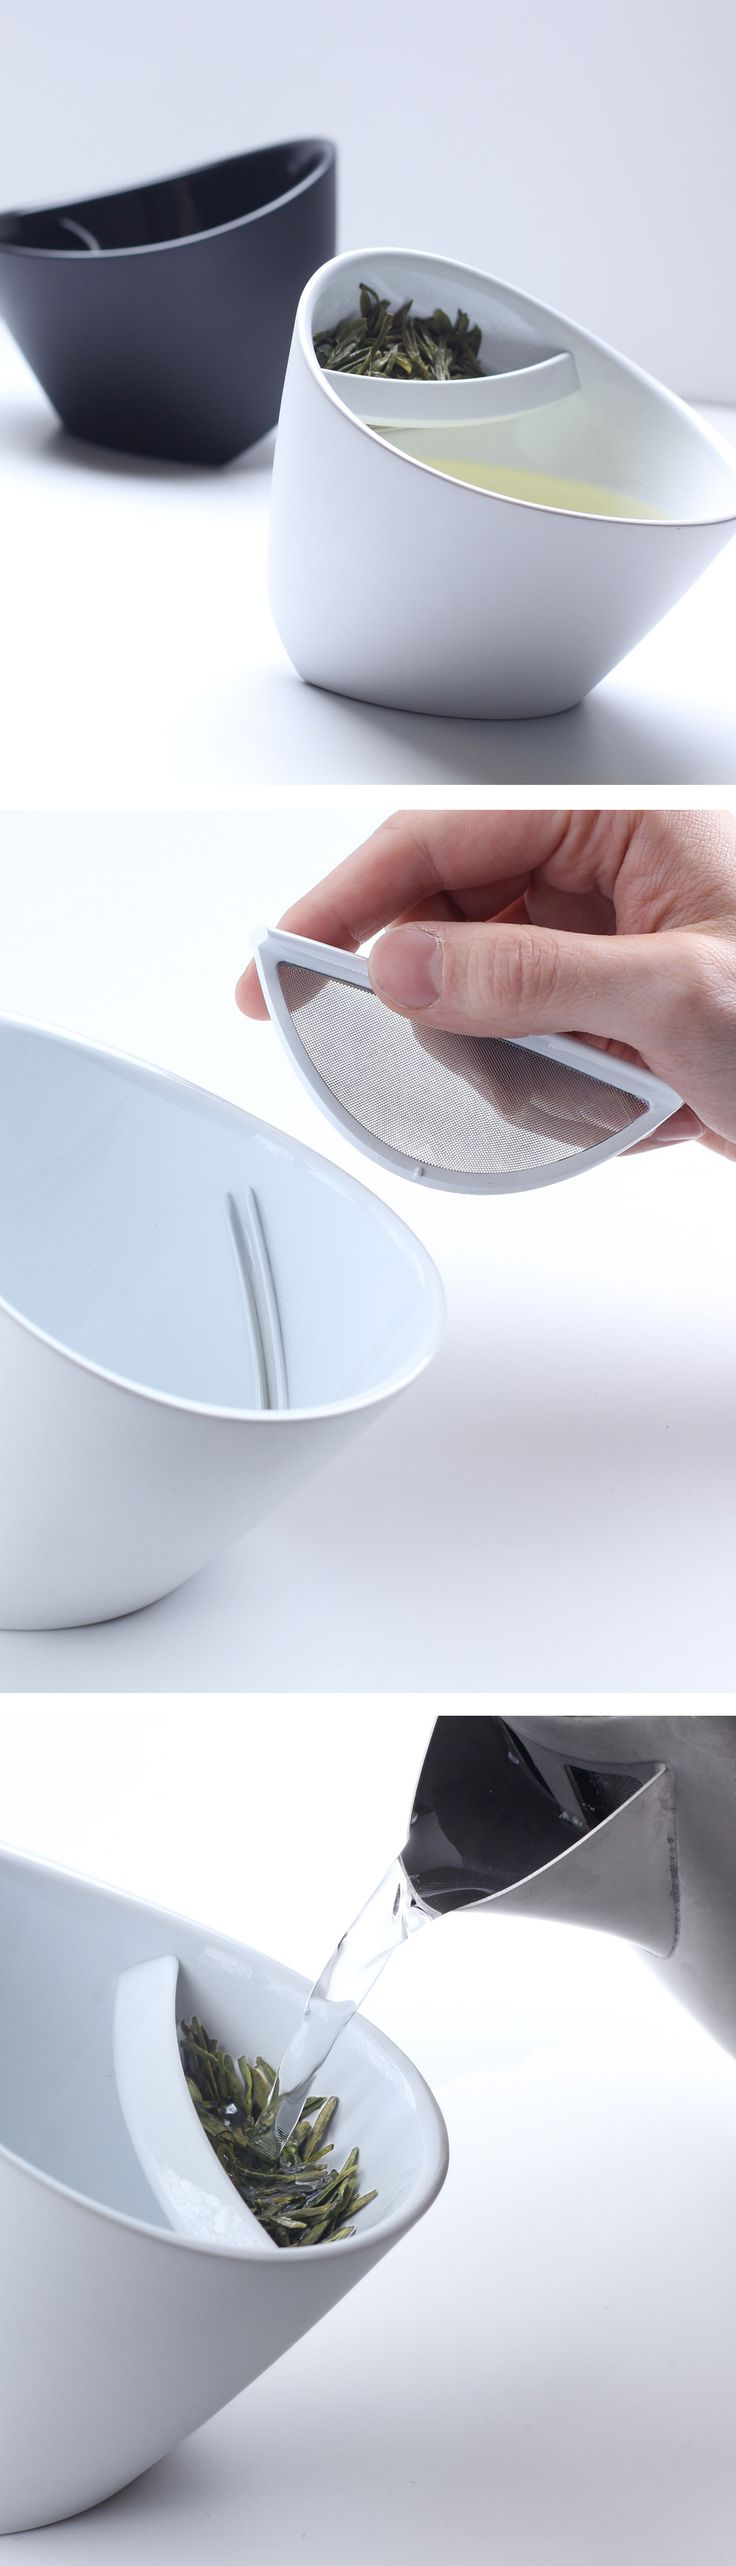 Tipping Tea Cup - once tea is seeped, tip the cup to move leaves away from the water.